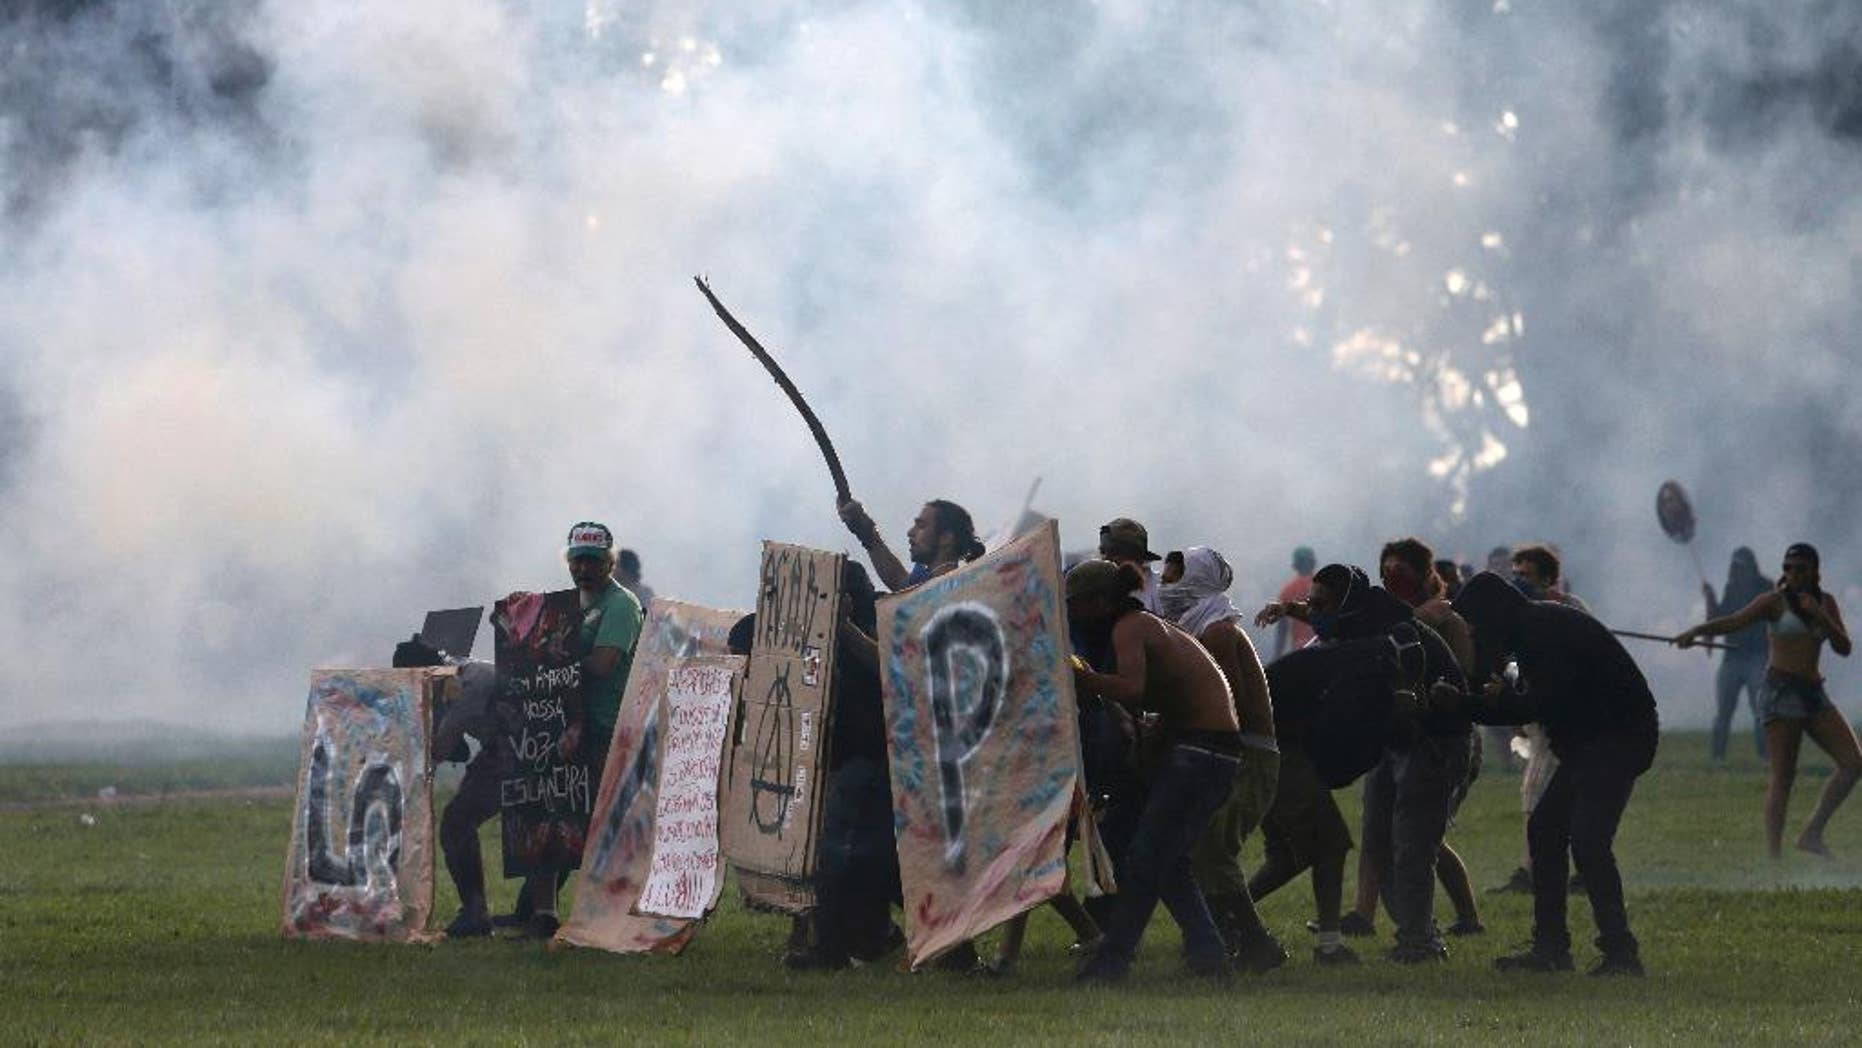 Protesters shield themselves as police fire tear gas outside Congress, where senators planned to vote on a spending cap bill and the lower Chamber of Deputies was considering controversial anti-corruption legislation, in Brasilia, Brazil, Tuesday, Nov. 29, 2016. Brazil, home to Latin America's largest economy, is suffering its worst recession in decades. (AP Photo/Eraldo Peres)